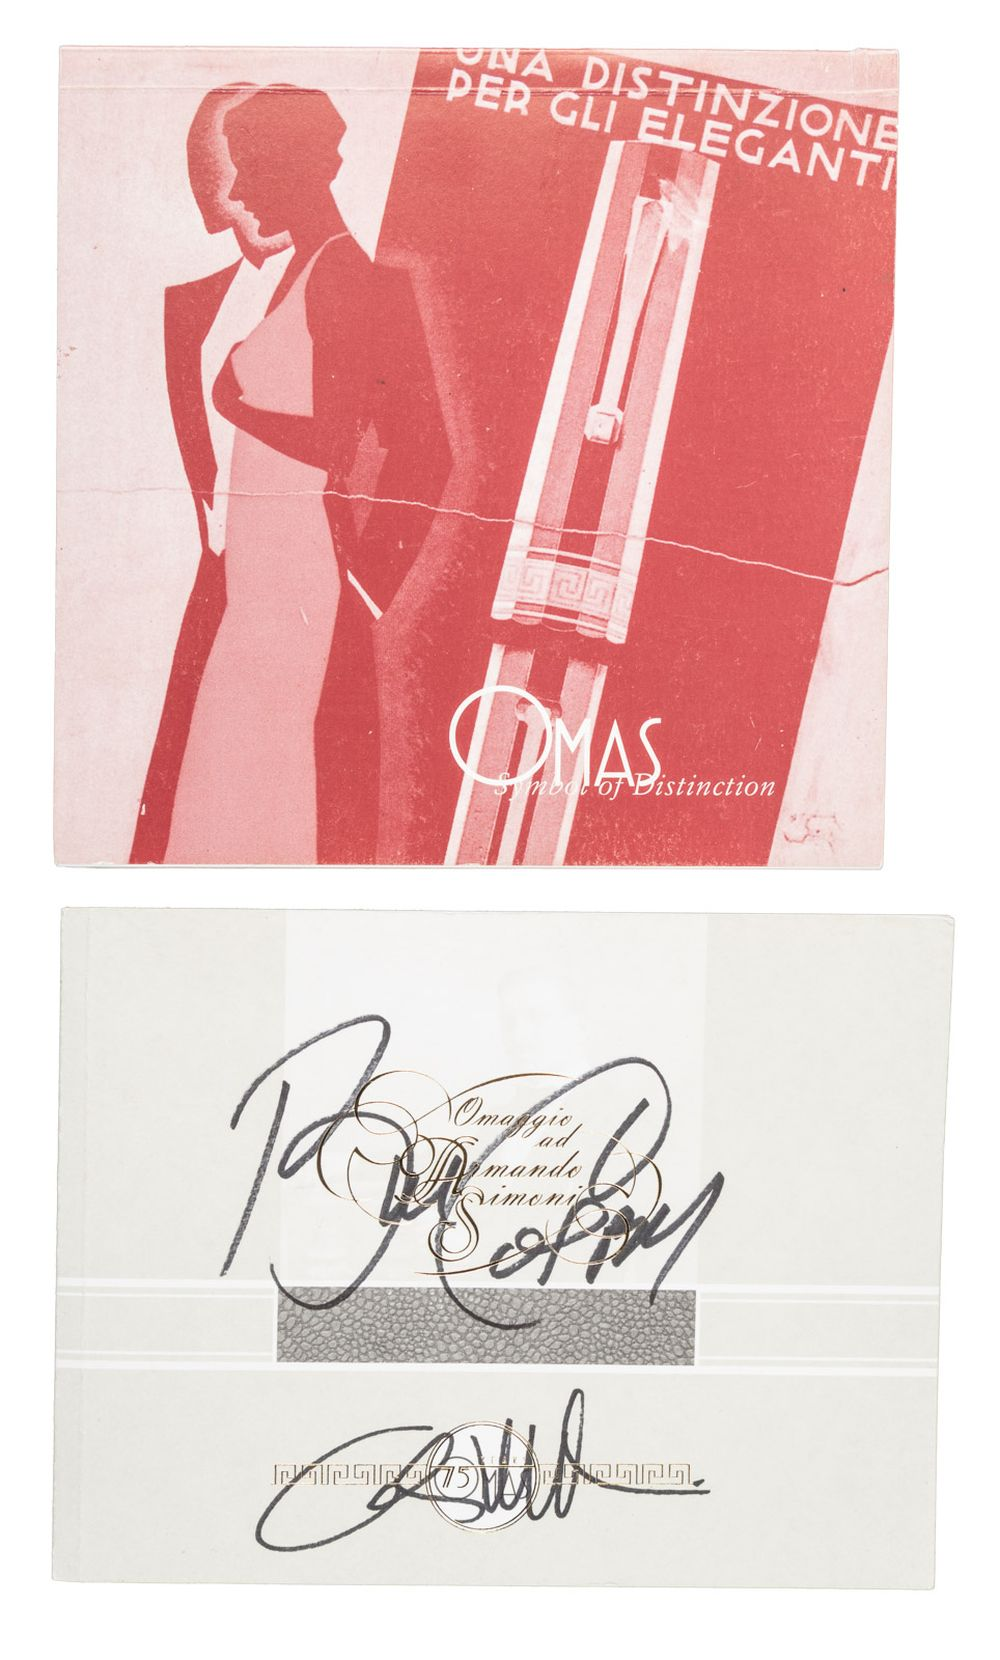 OMAS 75th Anniversary Booklet SIGNED by COSBY